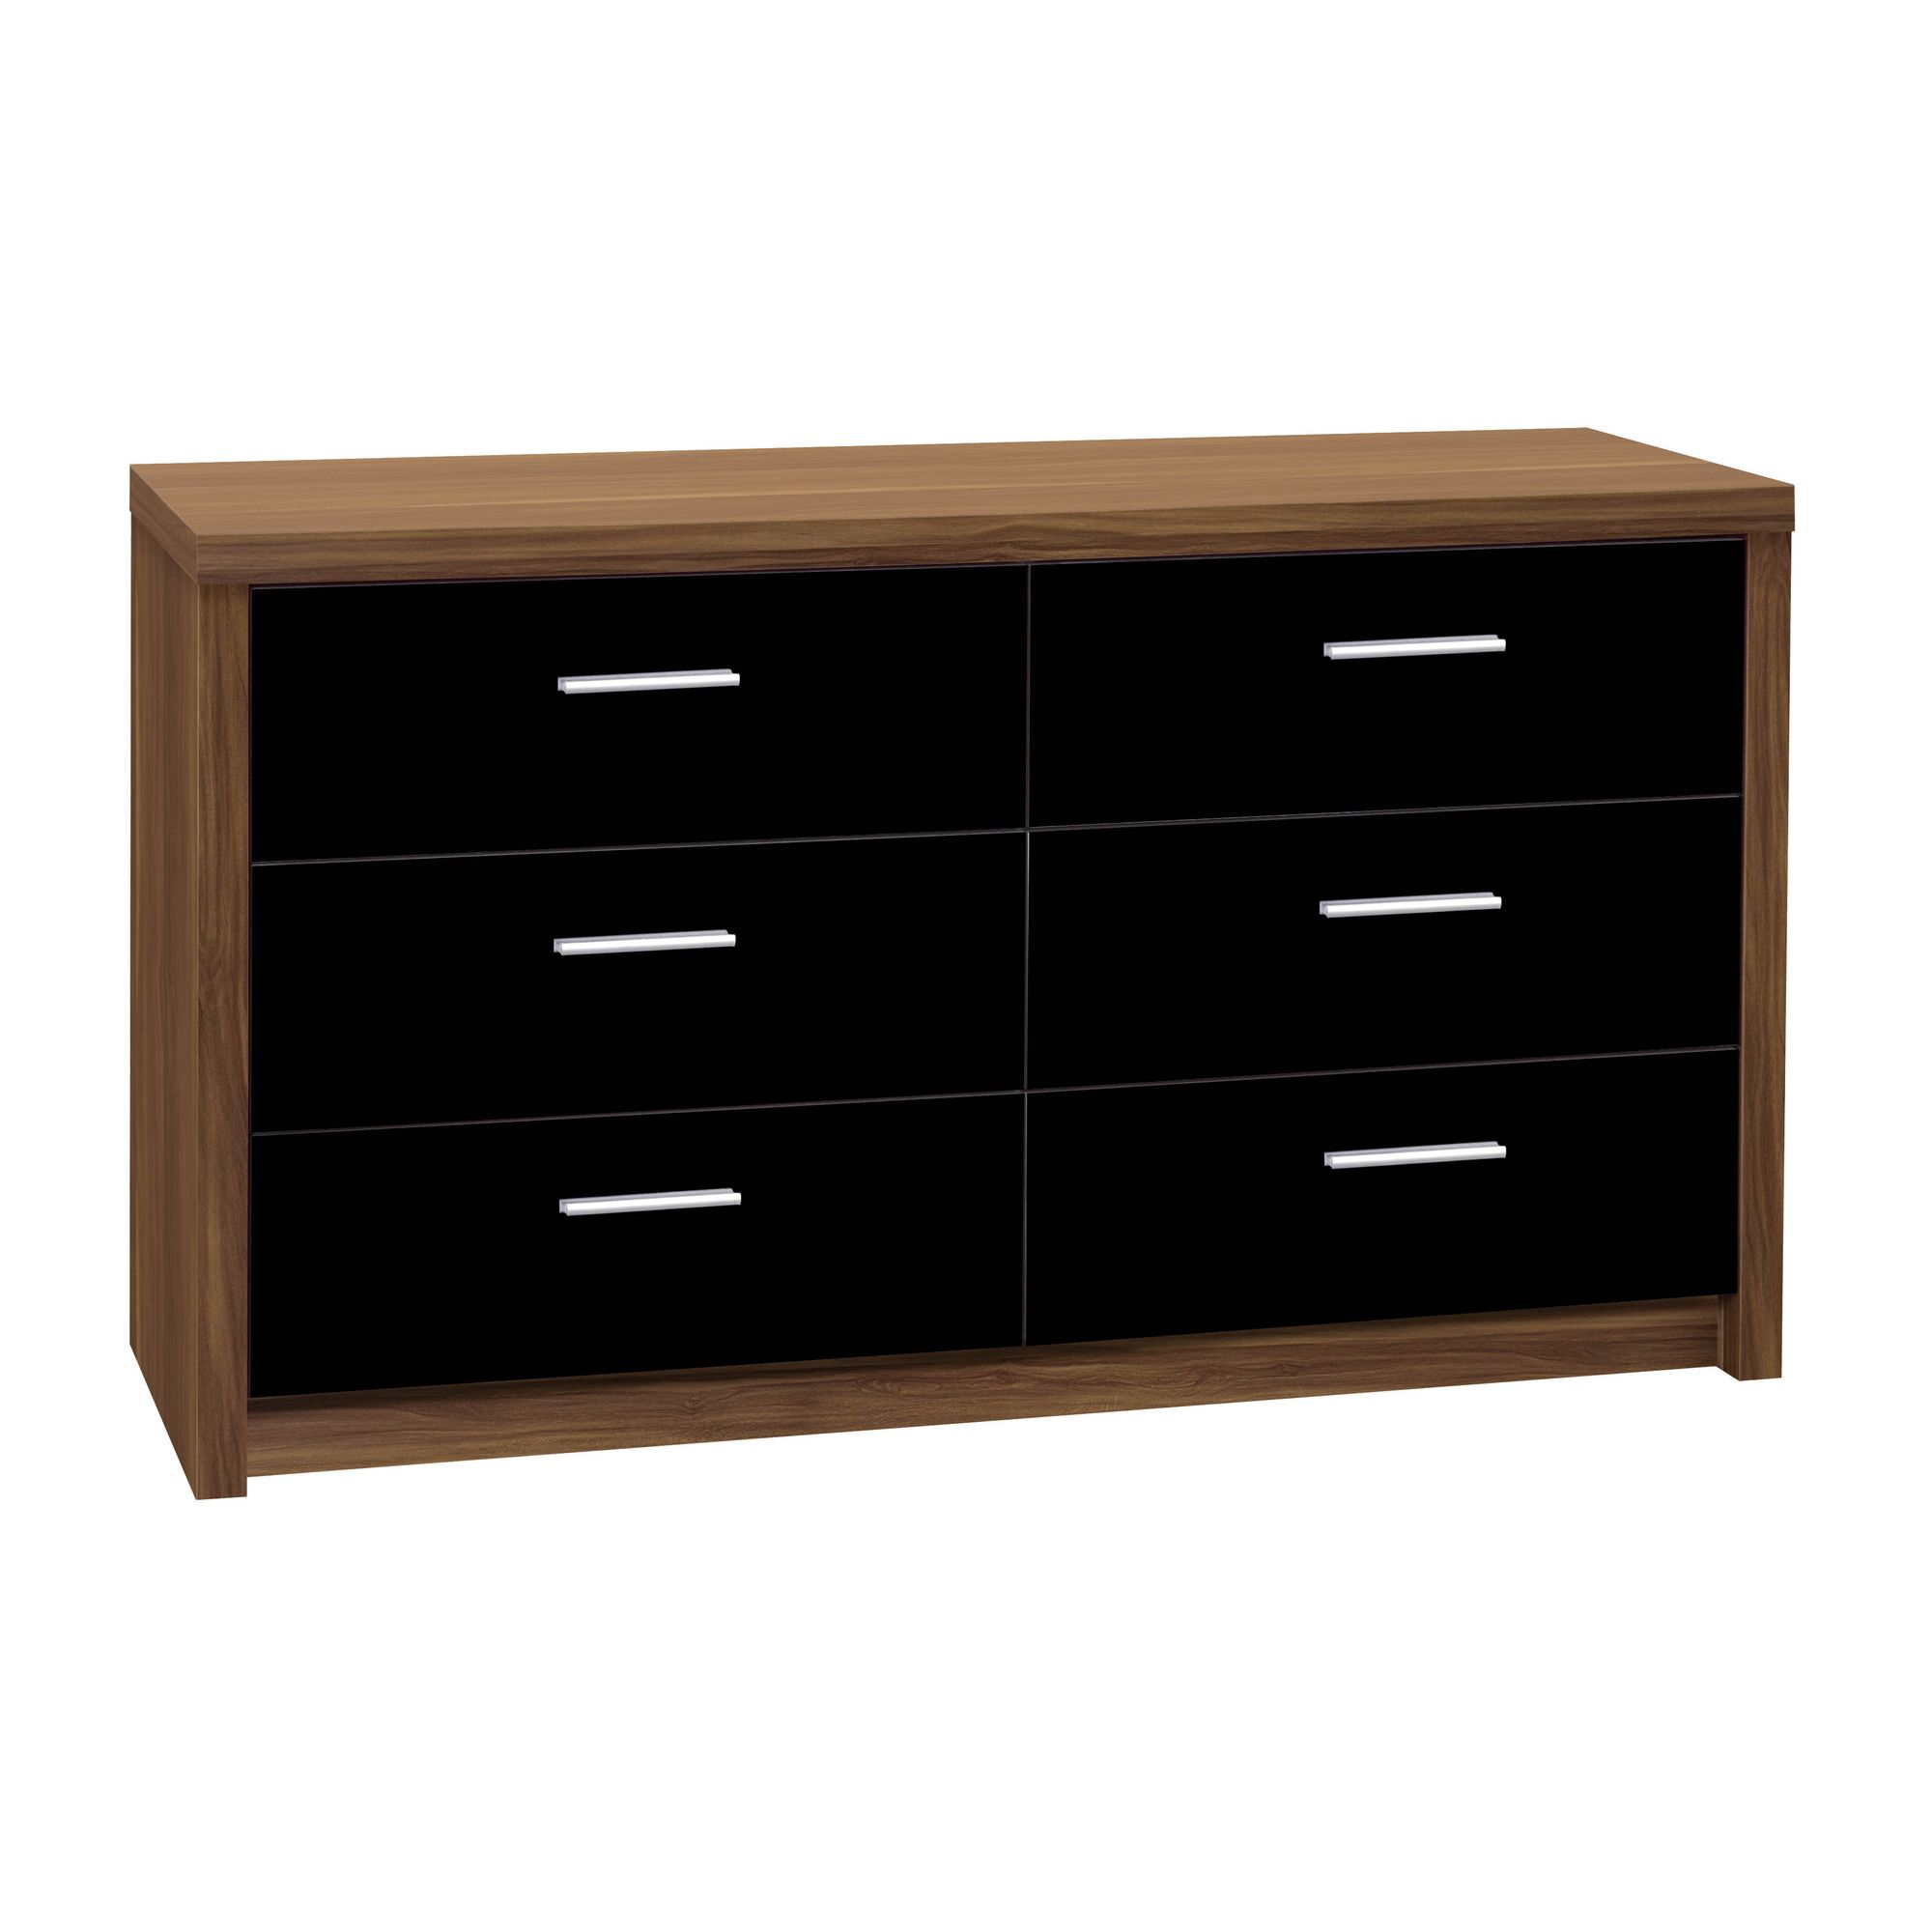 Premier Housewares Fargo 6 Drawer Chest at Tesco Direct